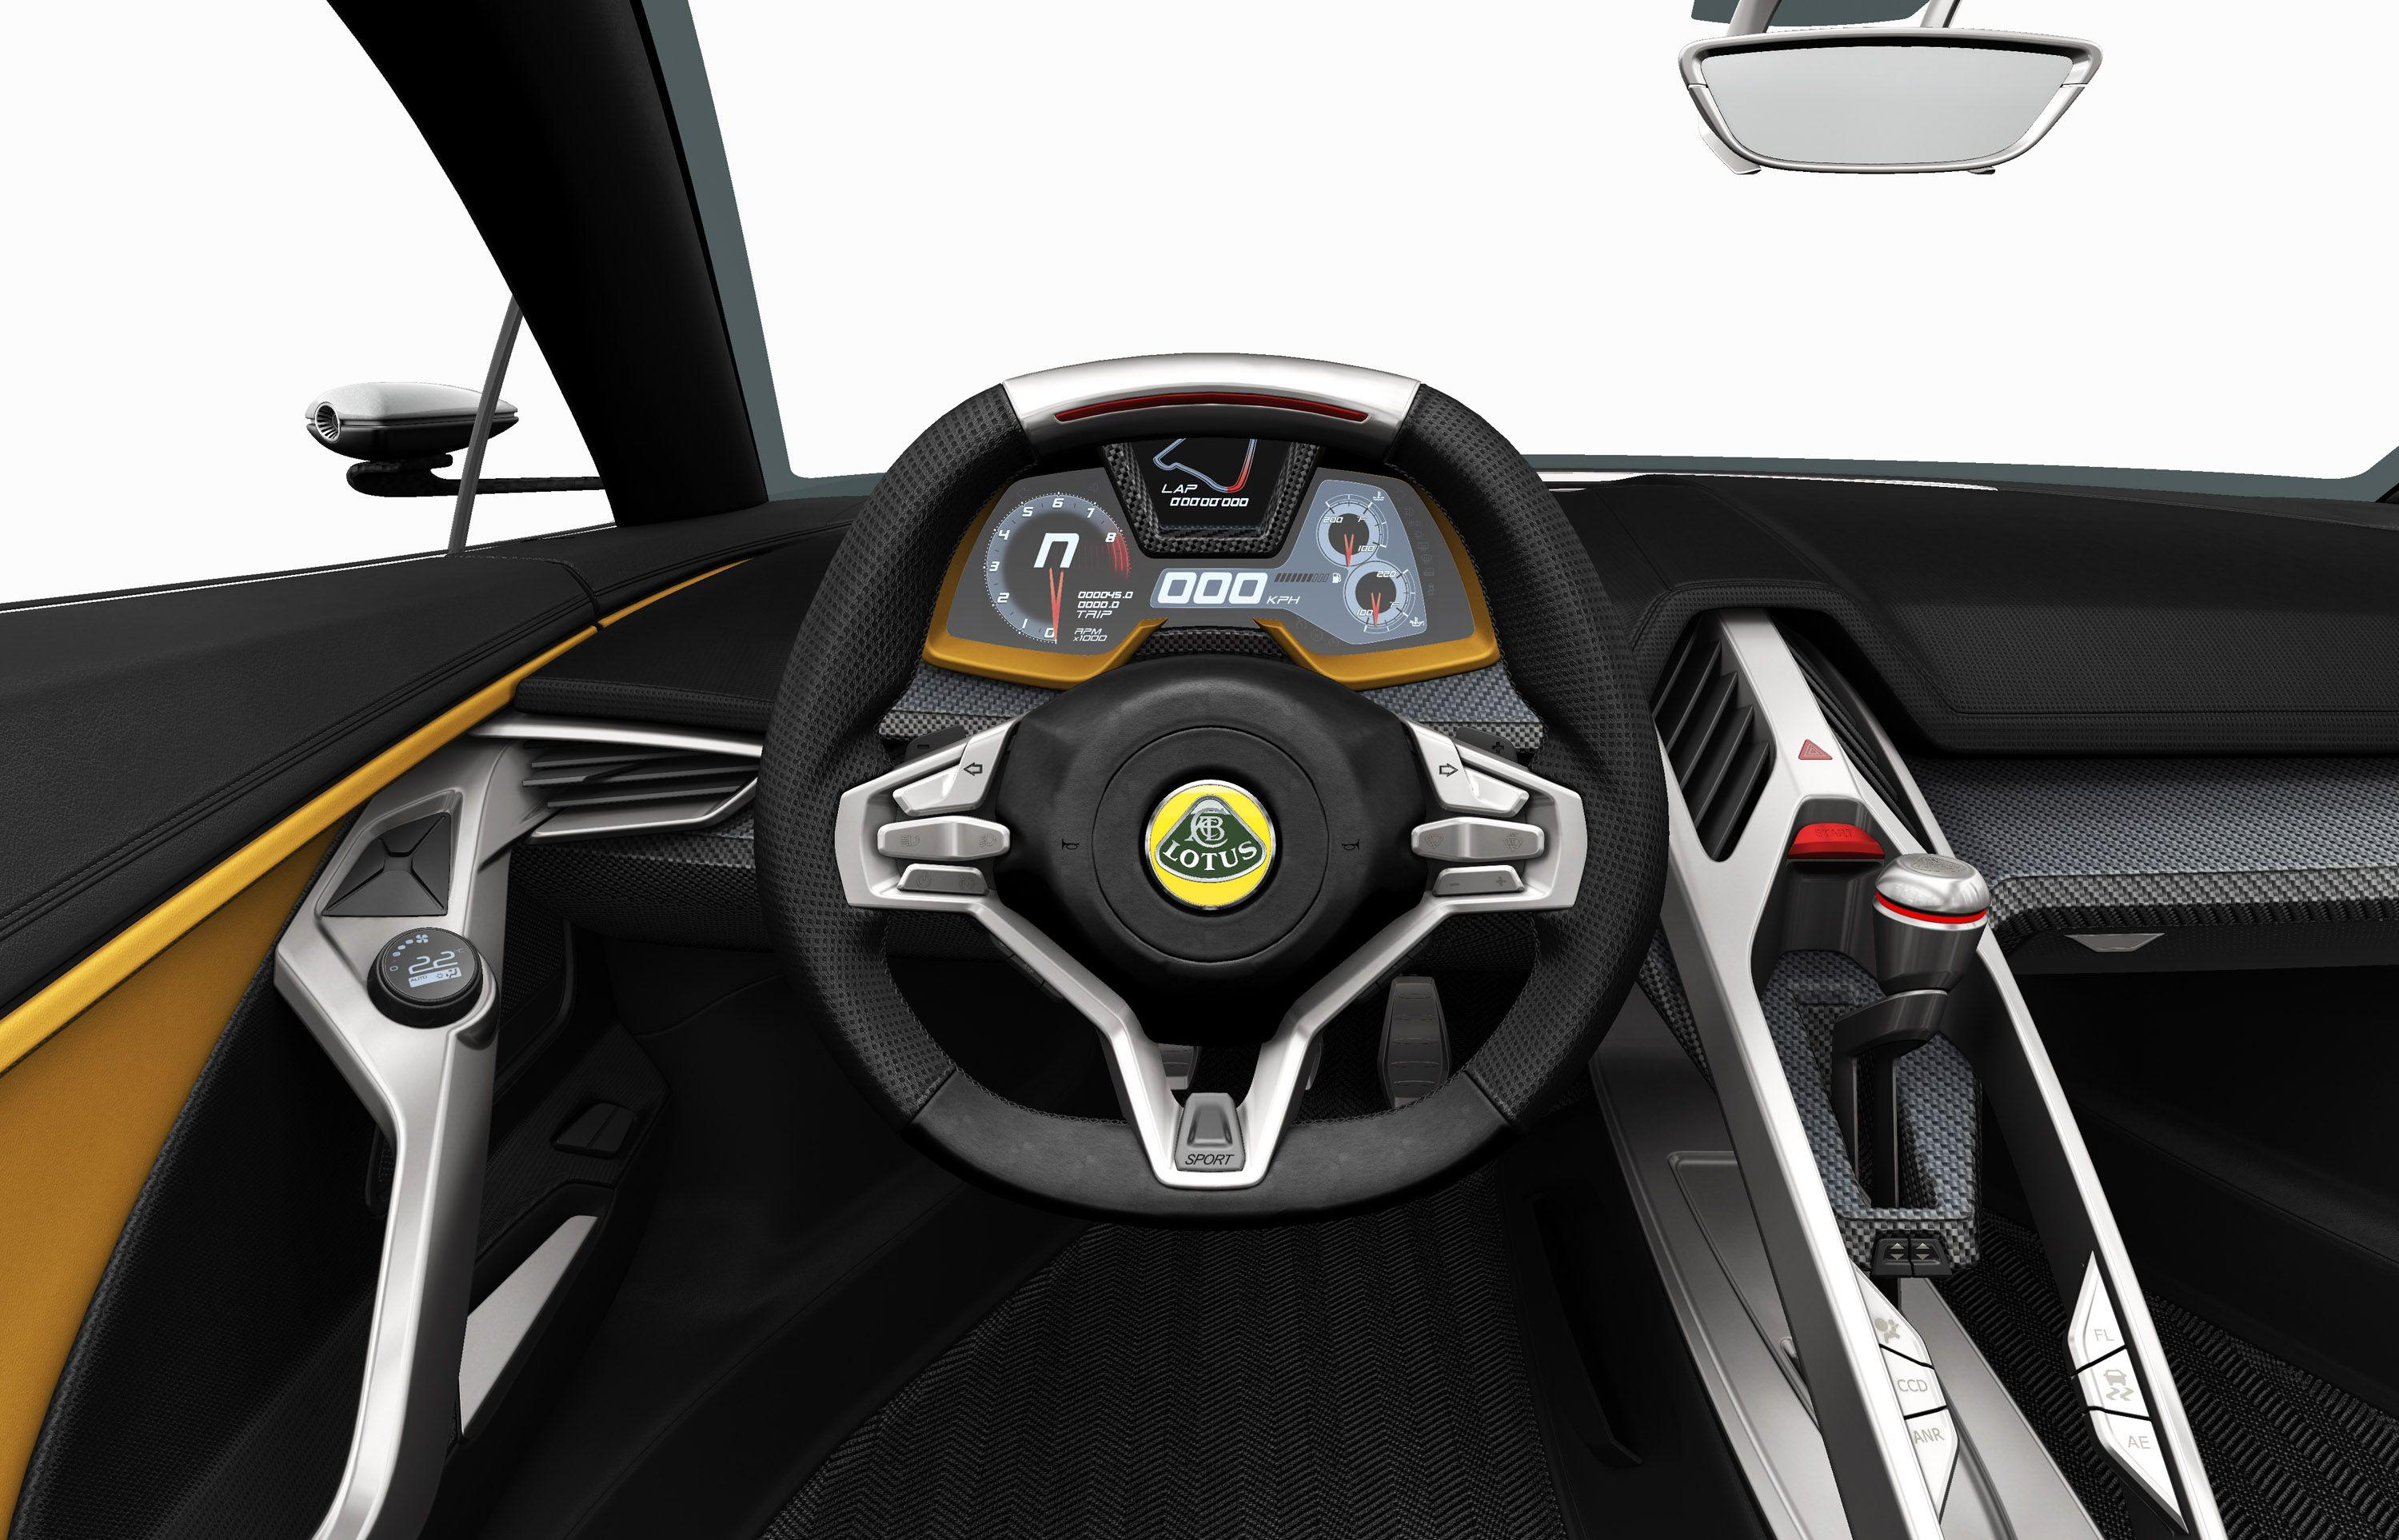 2015 Lotus Elise - Simply Wallpaper - Just choose and download